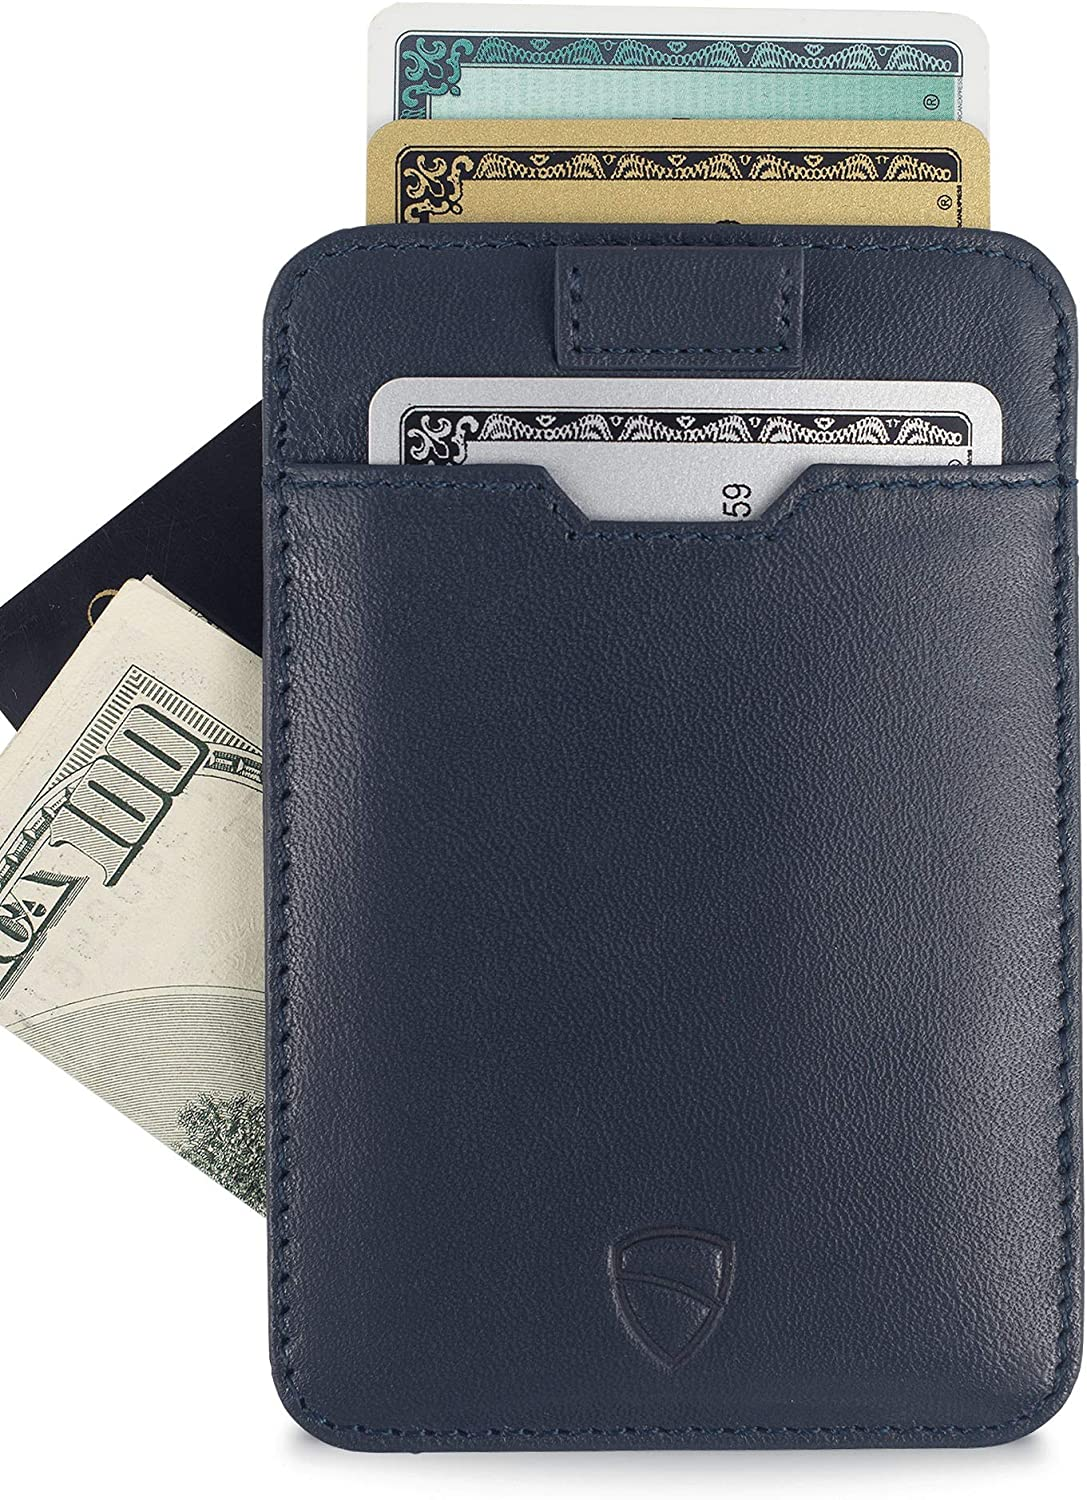 Ultra Thin Card Holder Design For Up To 10 Cards Top Quality Italian Leather Chelsea Slim Card Sleeve Mens Wallet with RFID Protection by Vaultskin Black